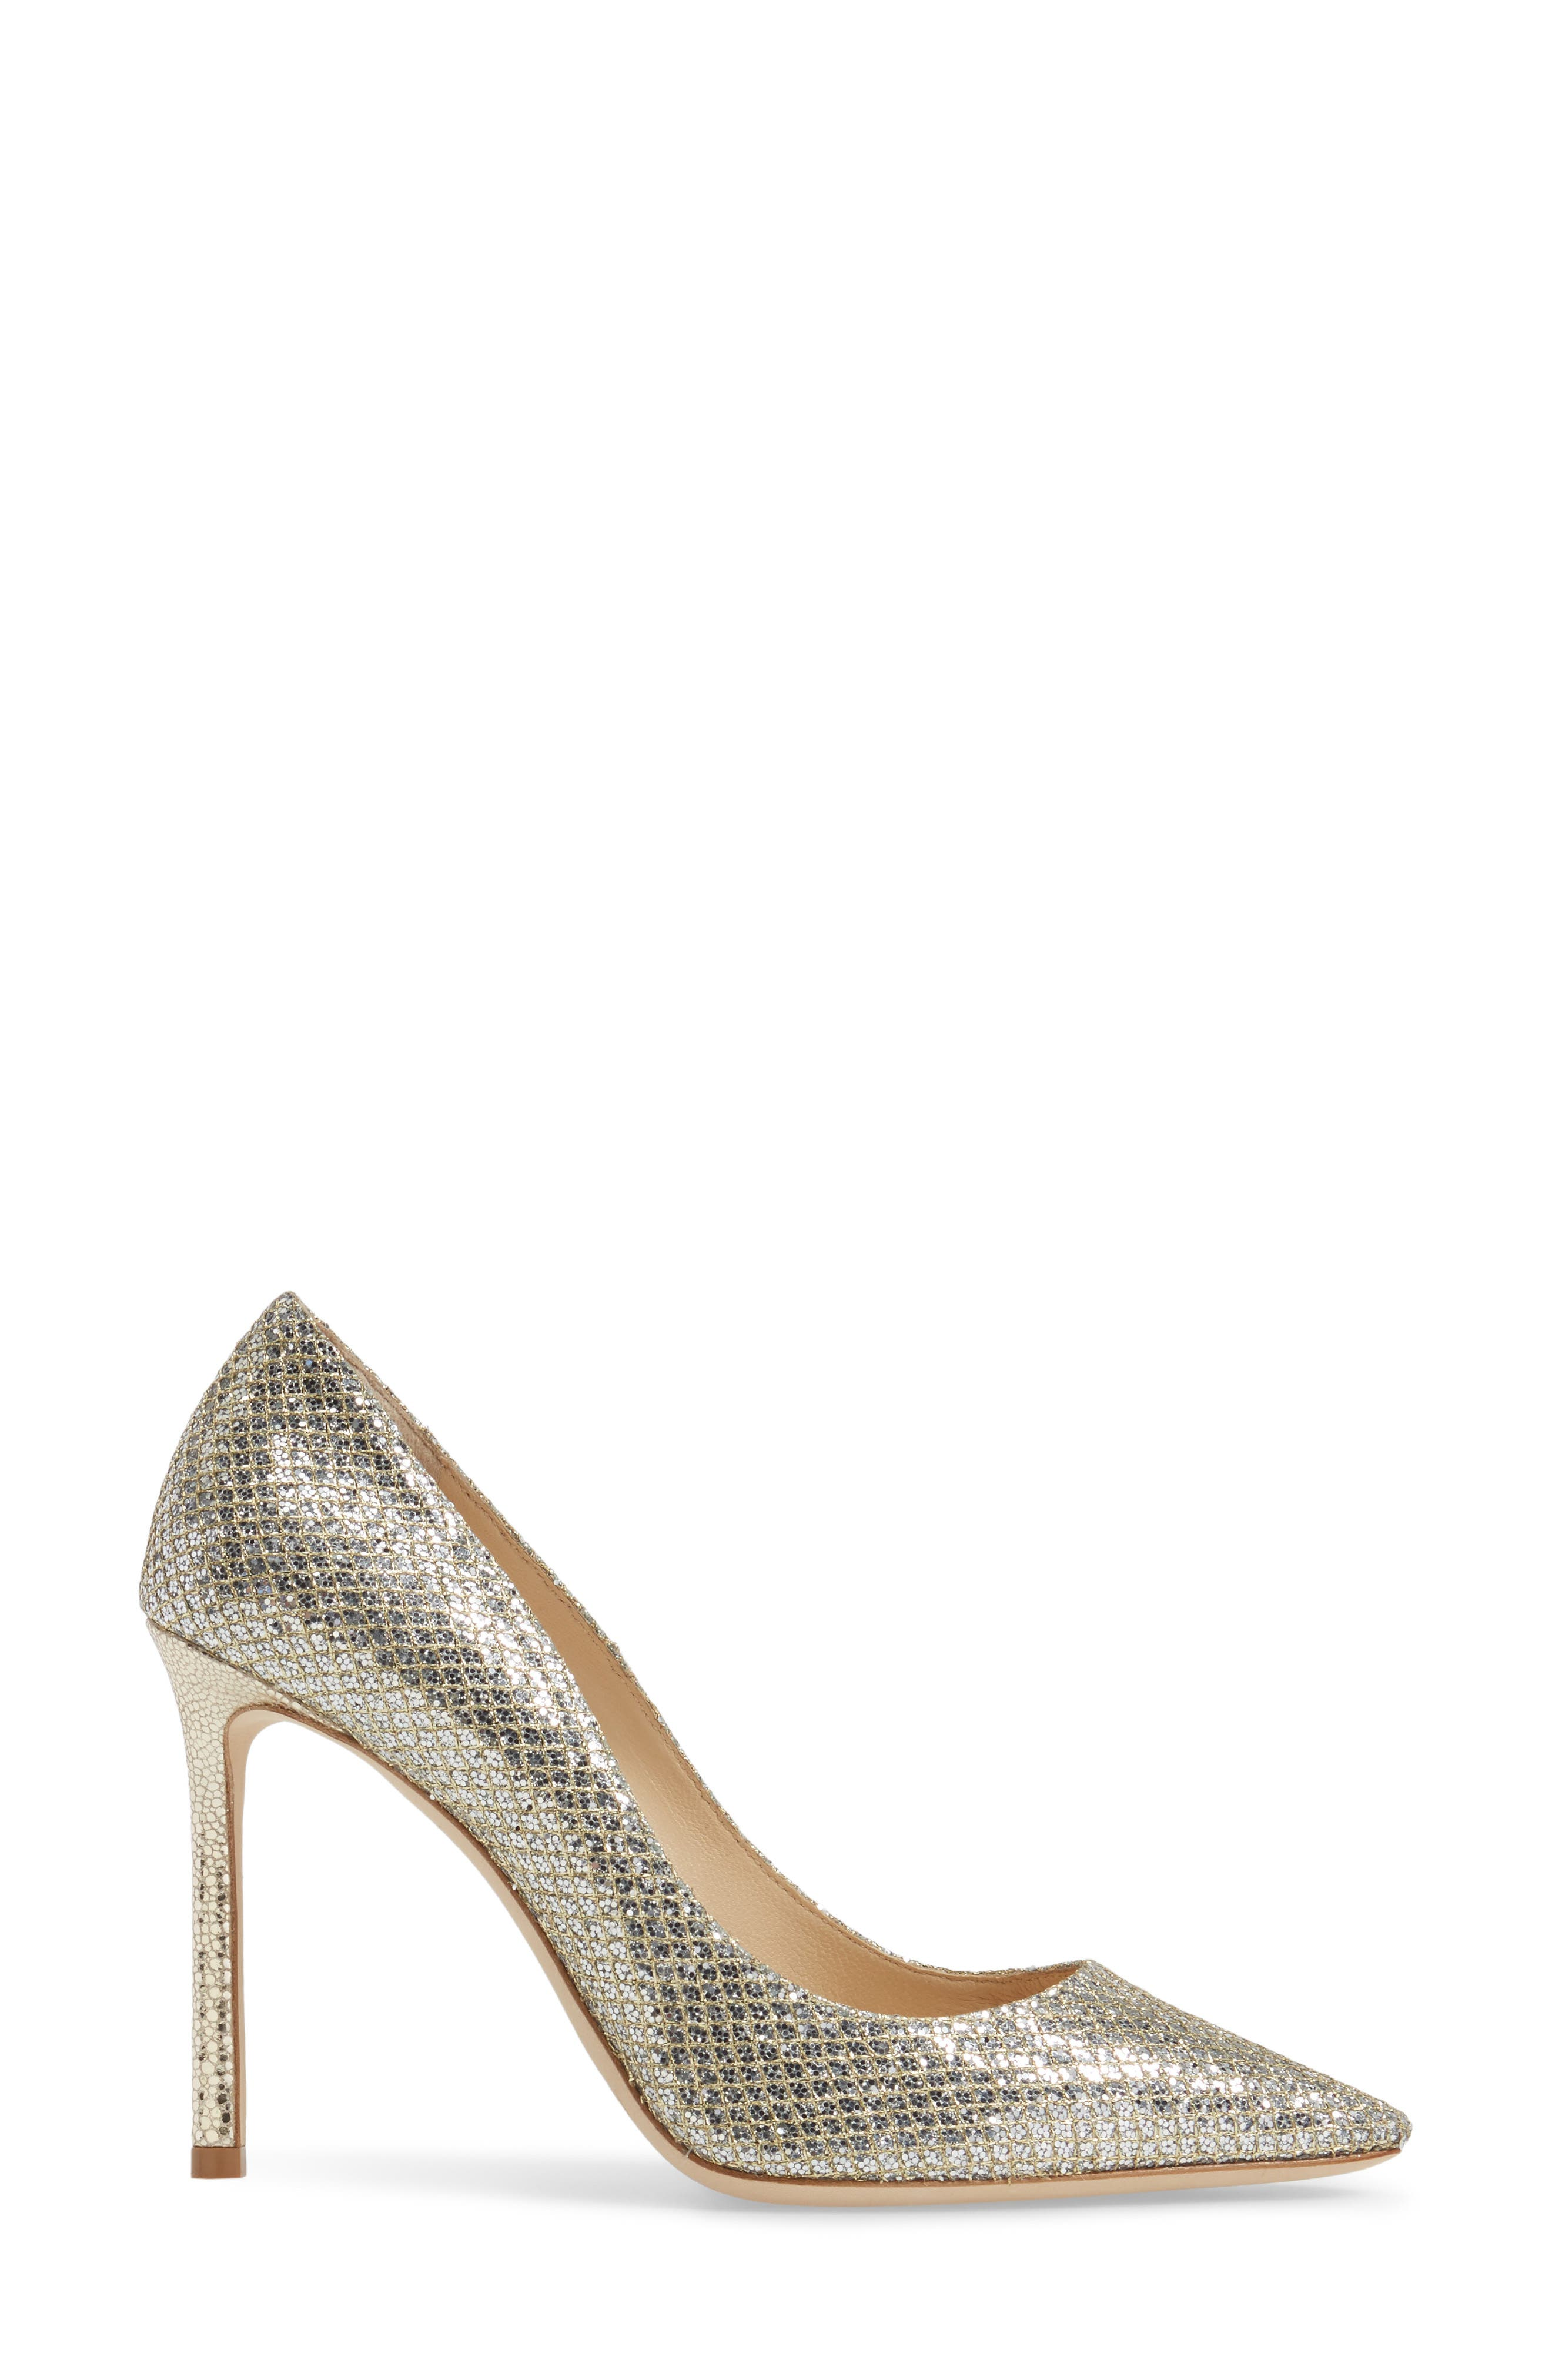 Romy Pointy Toe Pump,                             Alternate thumbnail 3, color,                             CHAMPAGNE